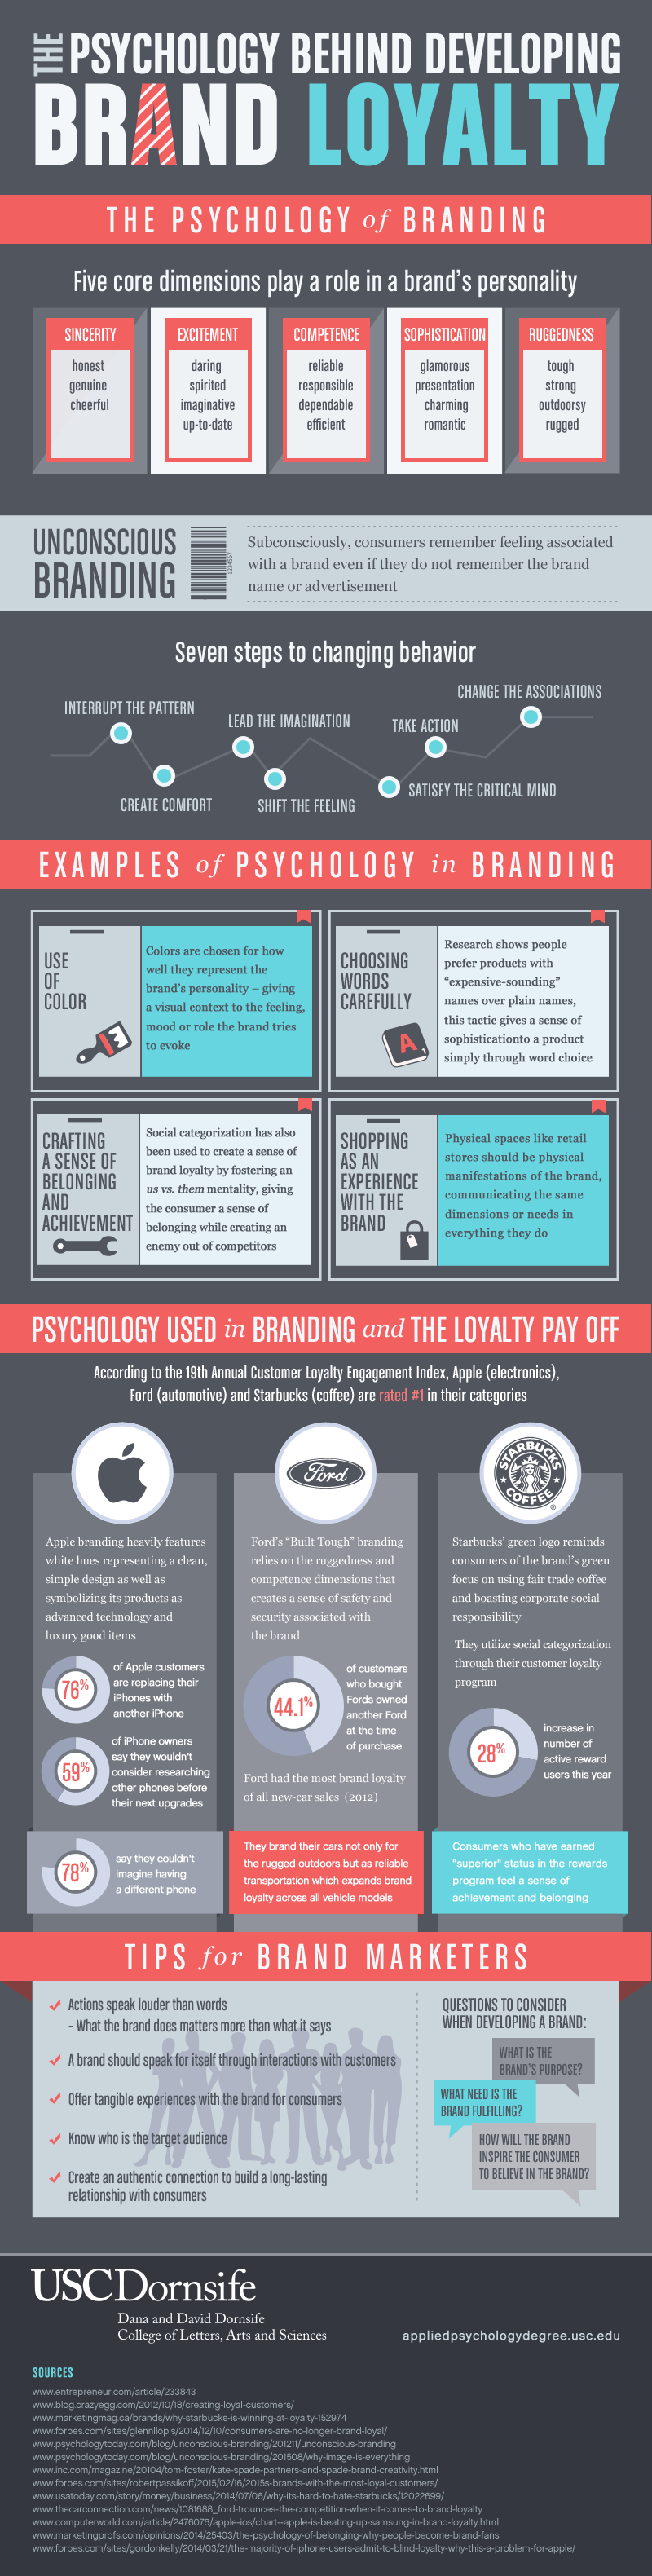 Dive further into the hows and whys of customer and brand loyalty in this great infographic!